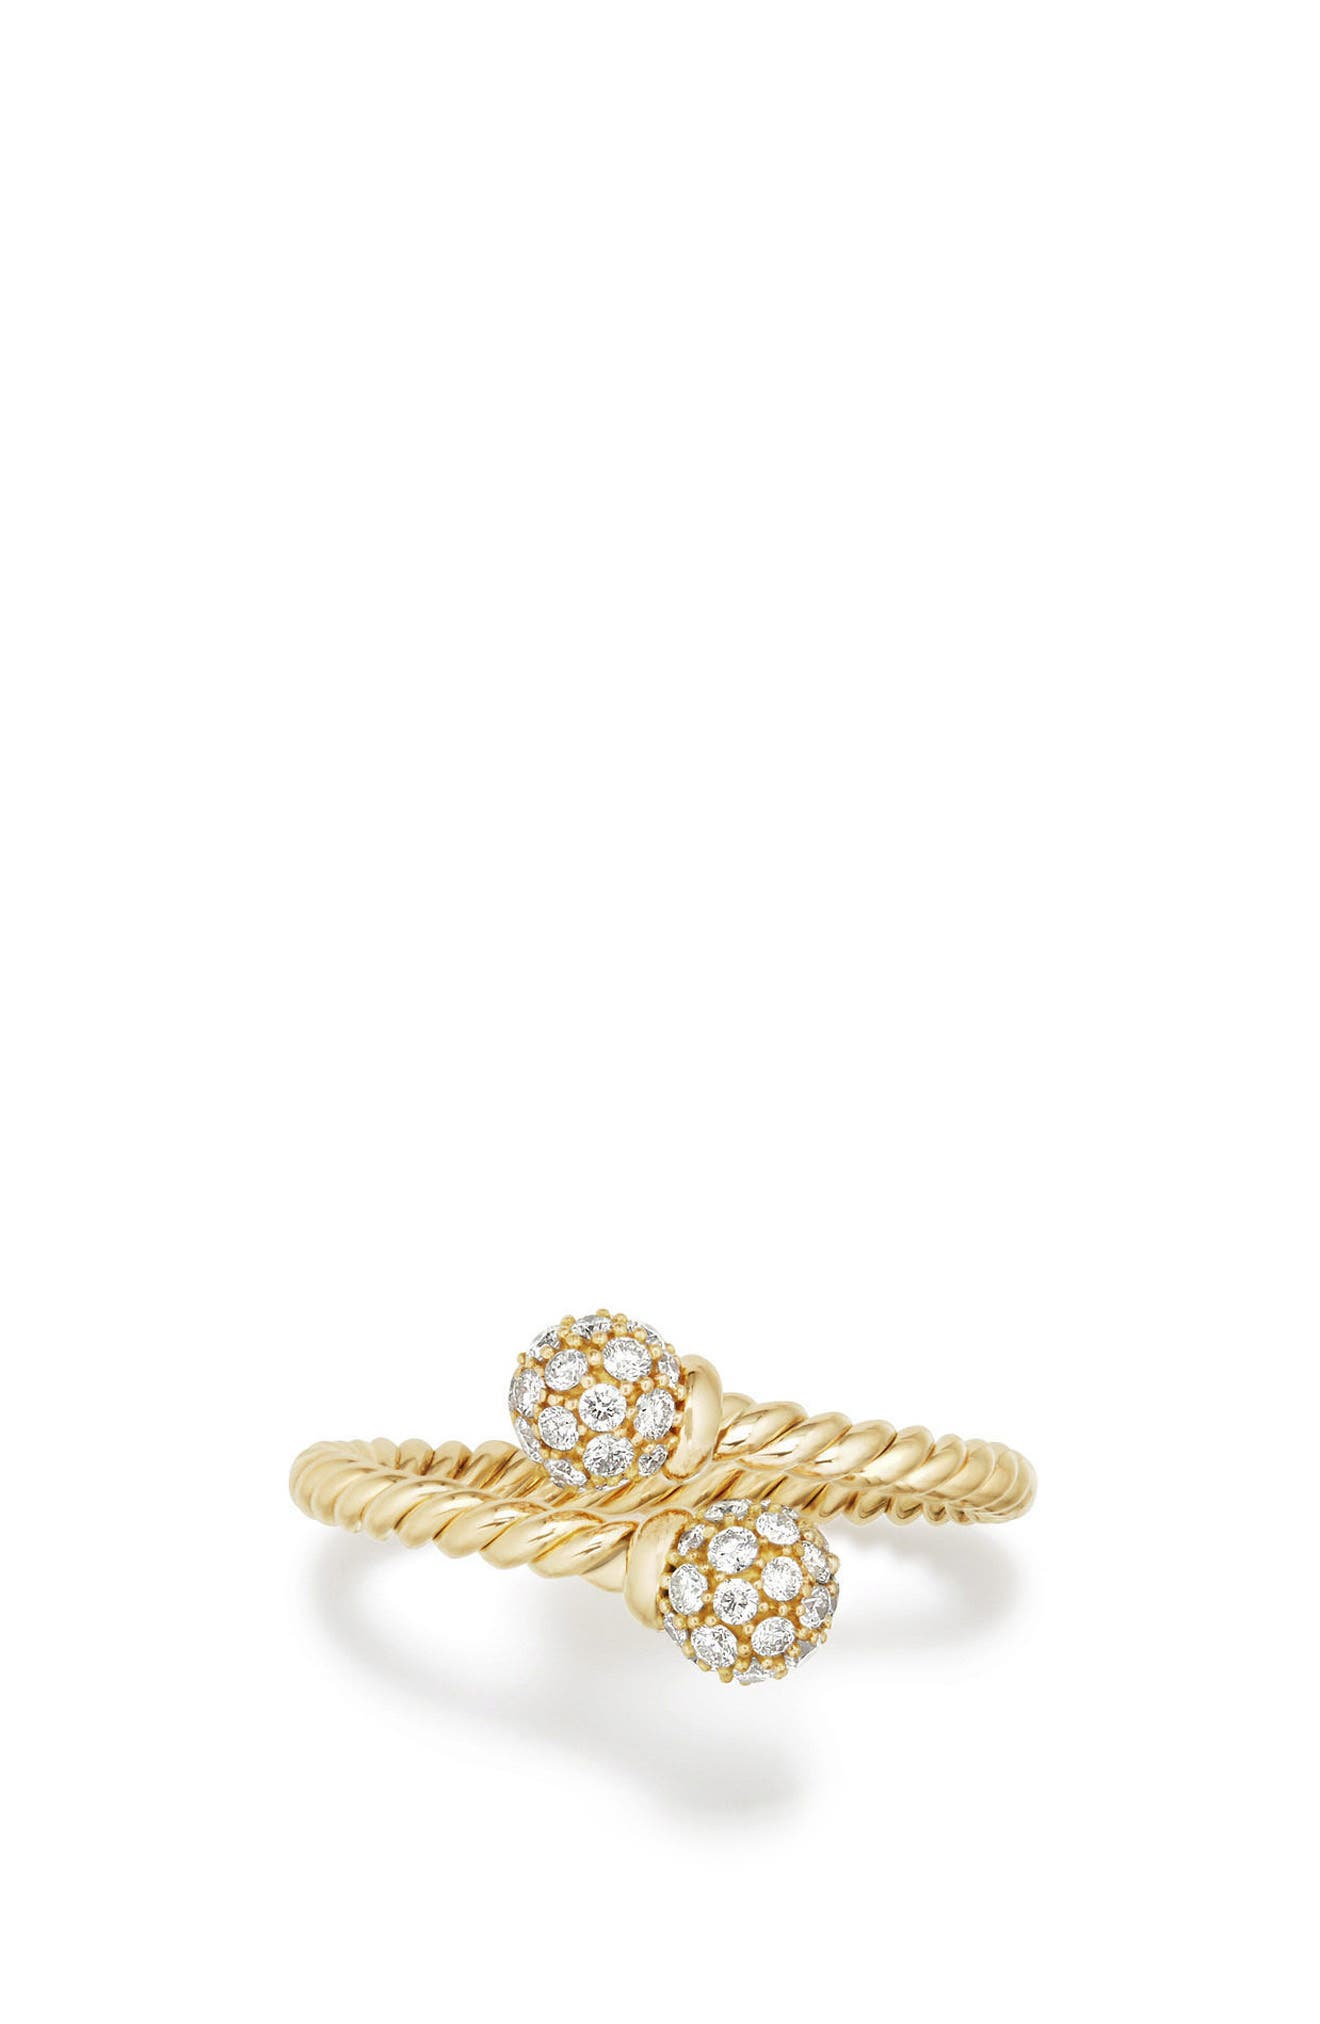 Petite Solari Bypass Ring with Diamonds in 18K Gold,                             Main thumbnail 1, color,                             YELLOW GOLD/ DIAMOND